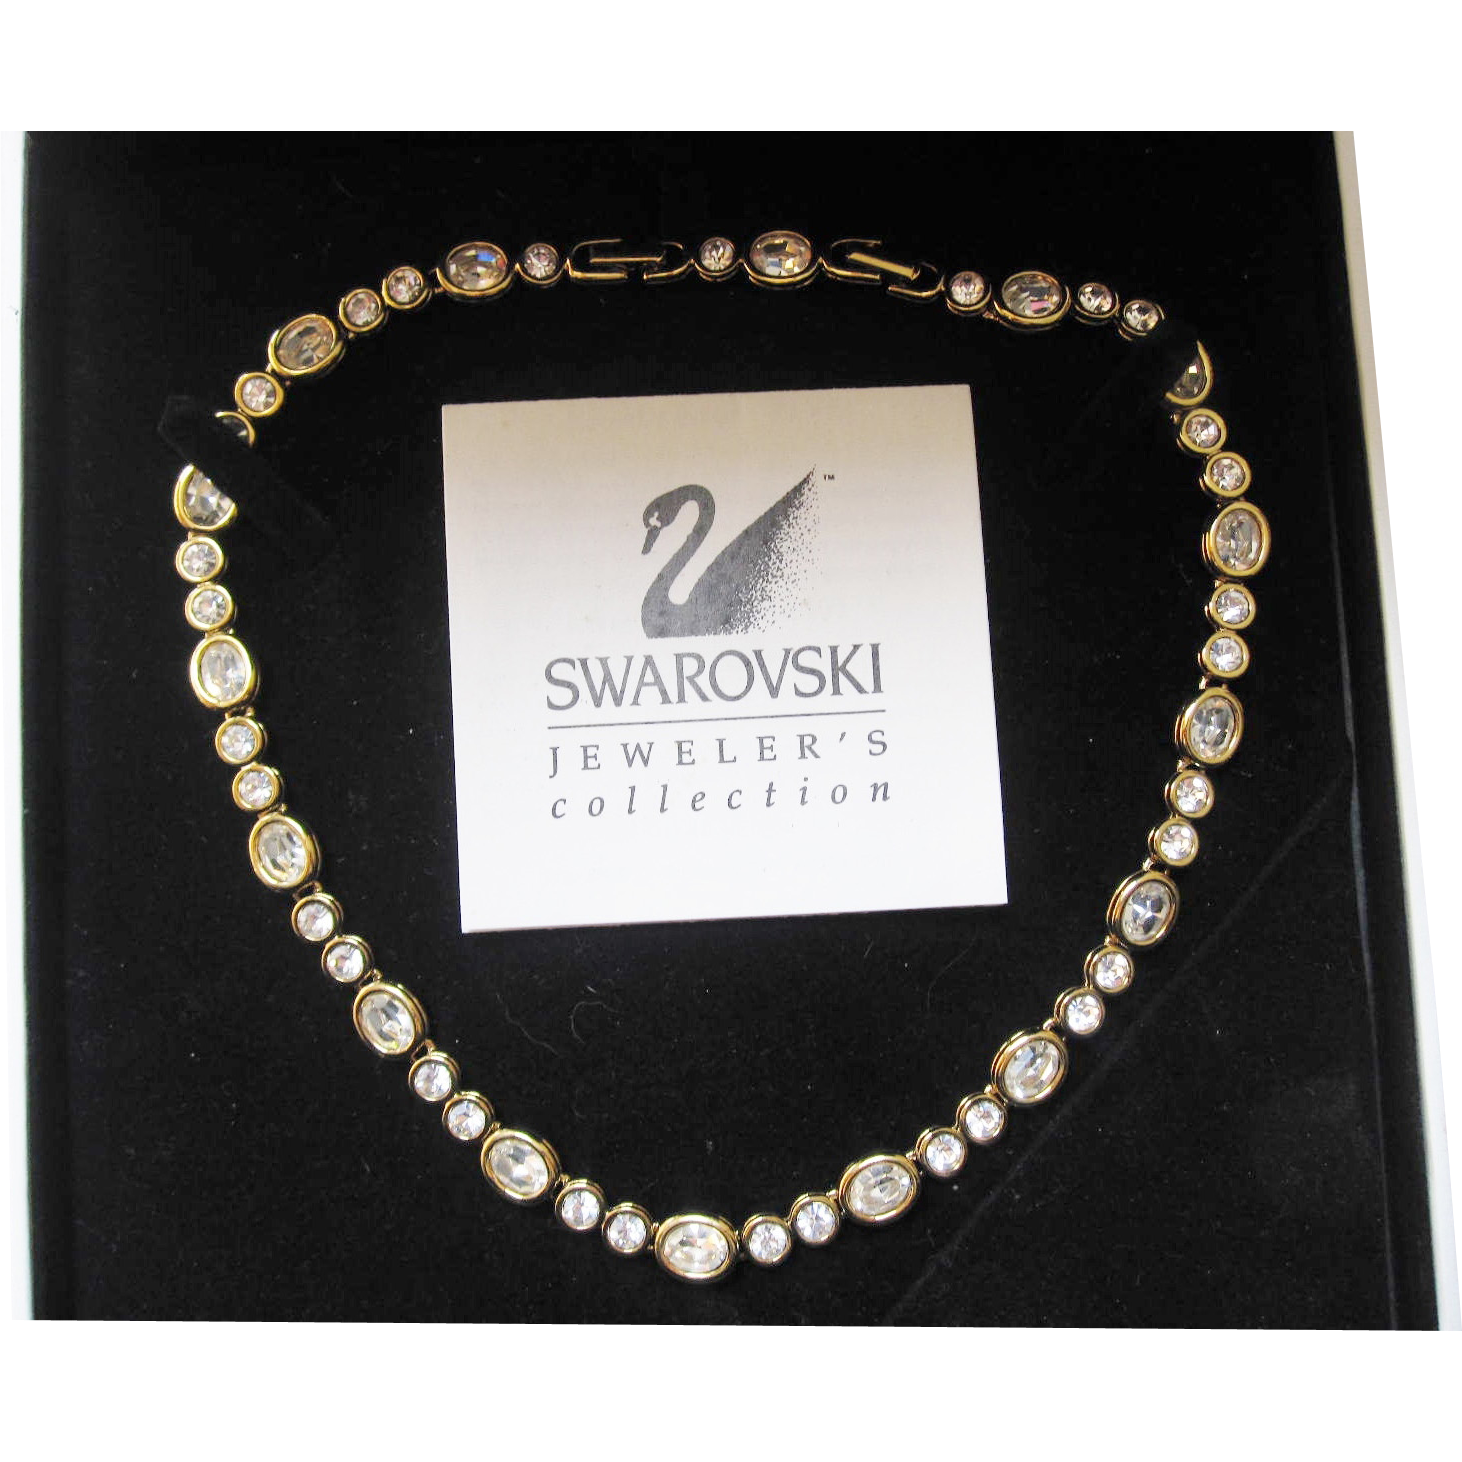 Swarovski crystal necklace choker like new with original box and papers.